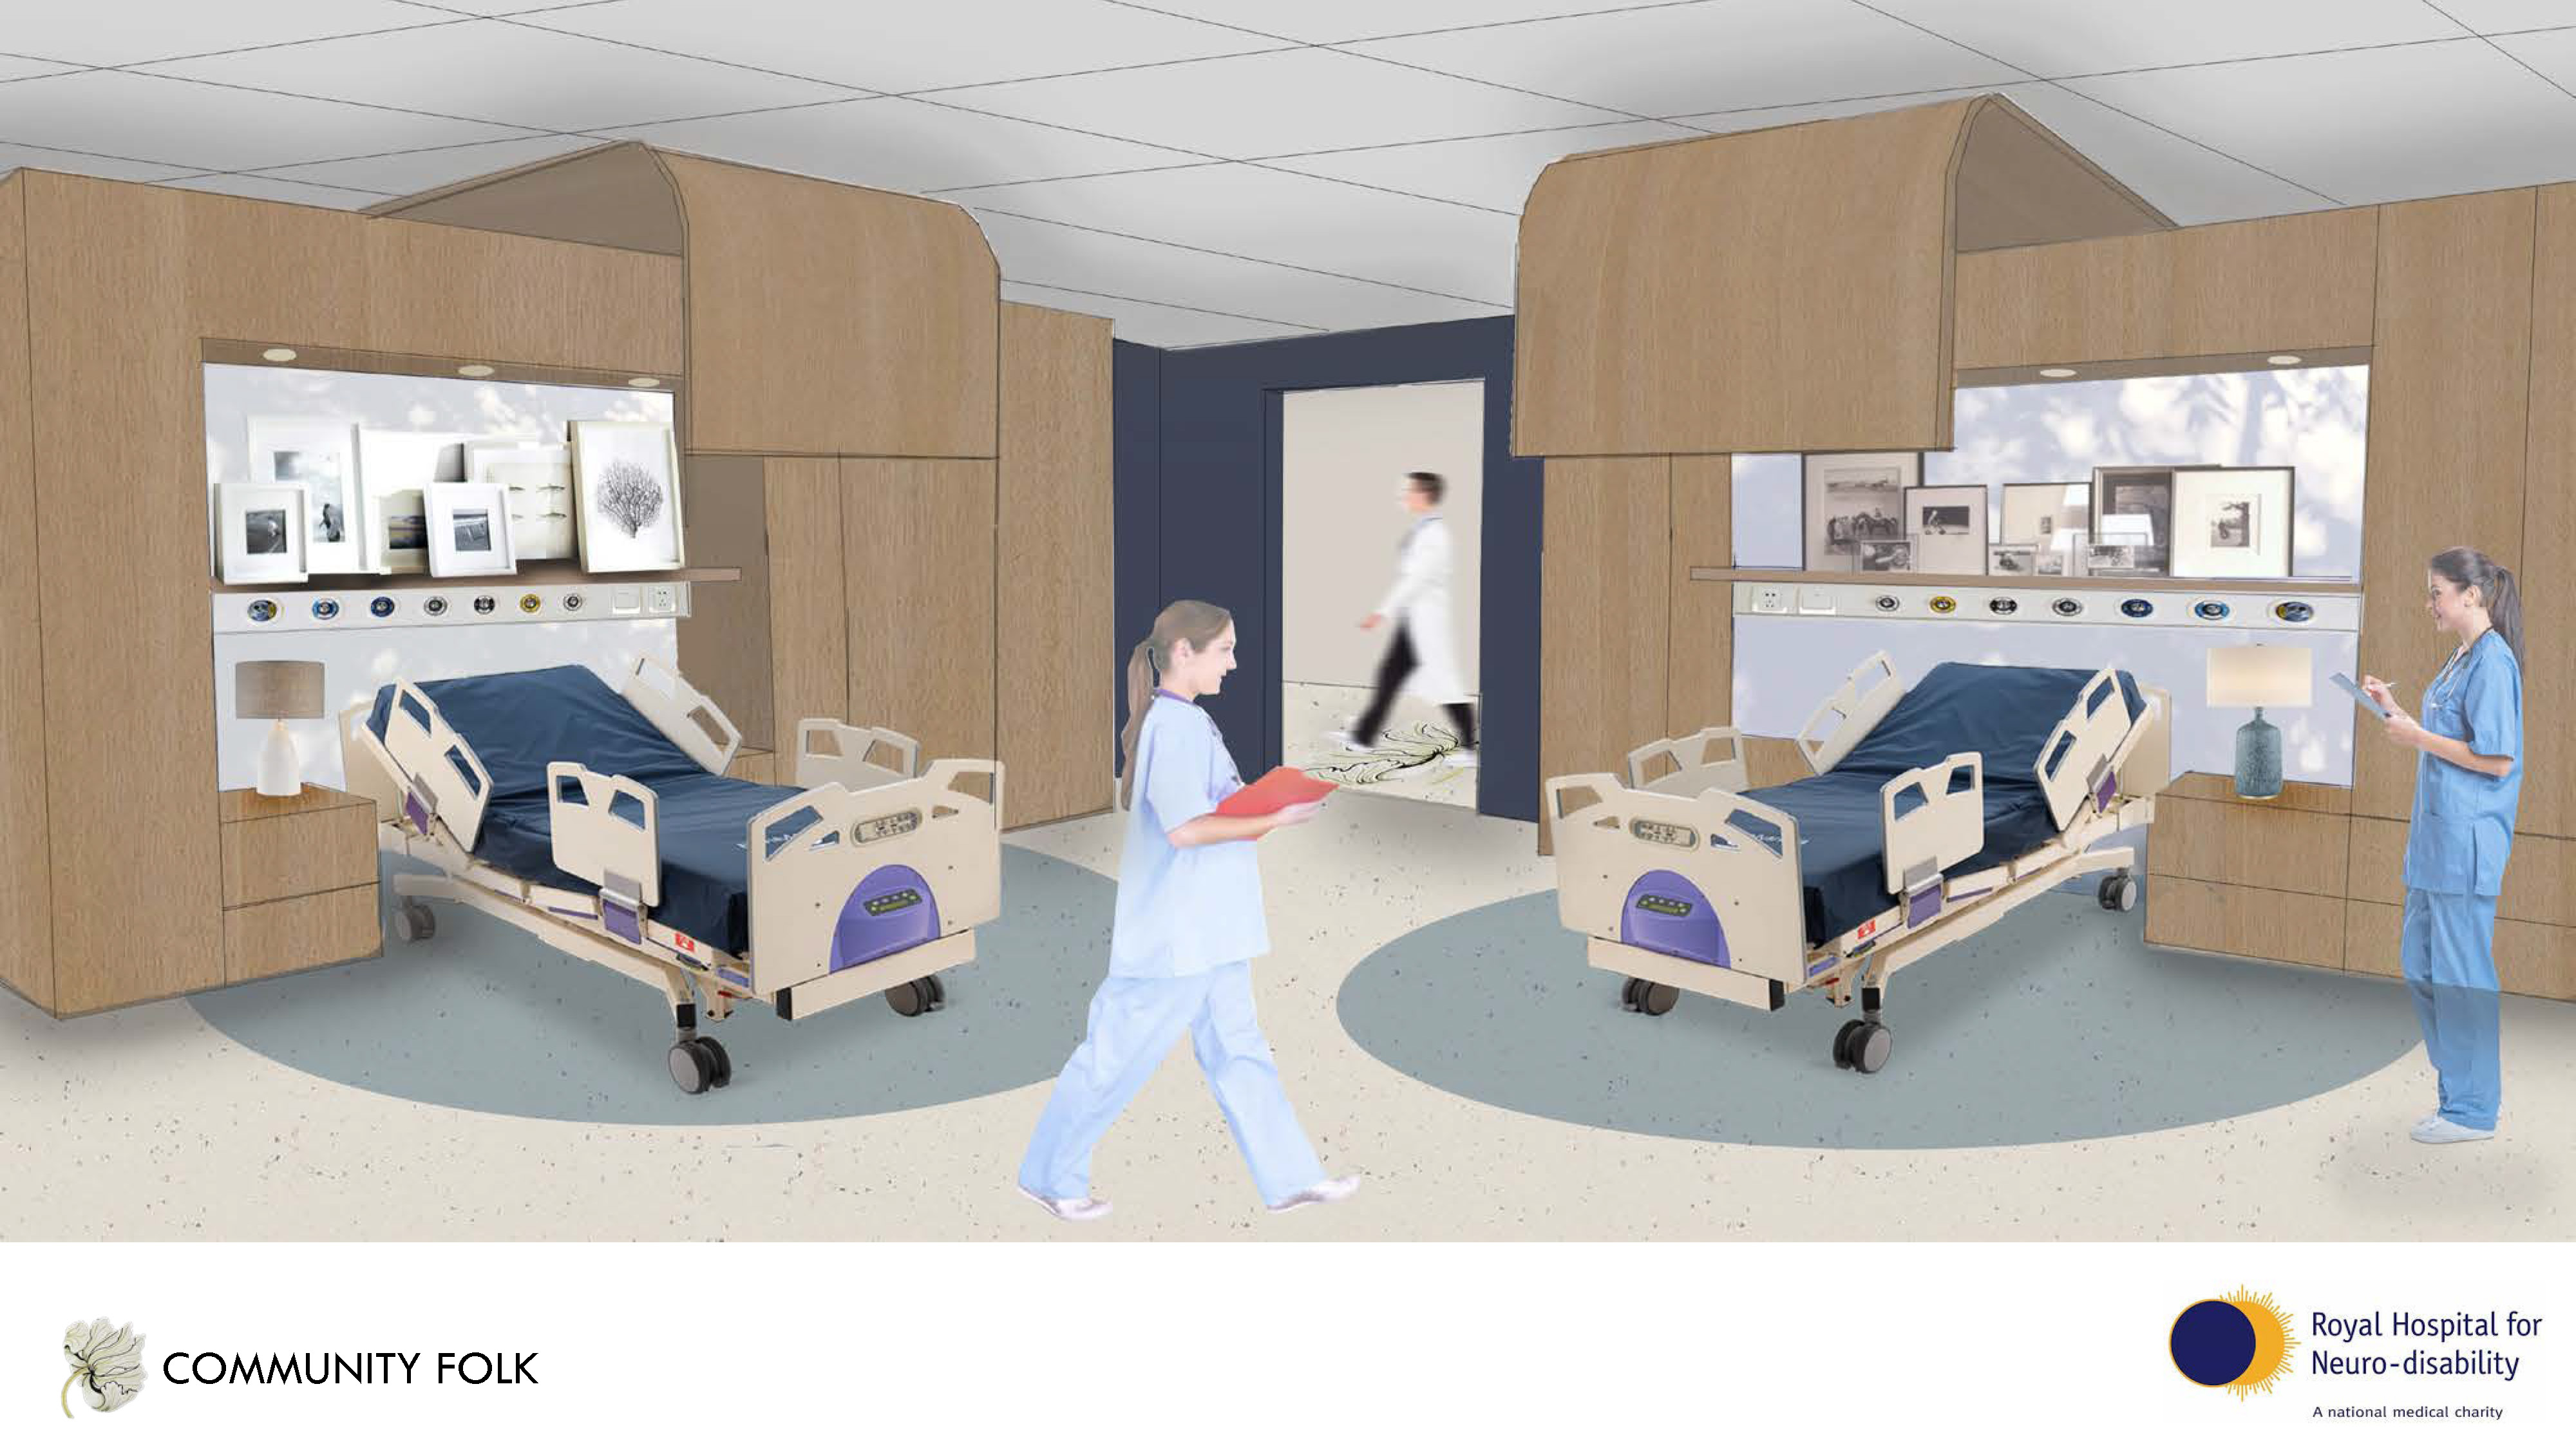 RHN Group Project 8 - Commercial Hospital Ward Community Folk